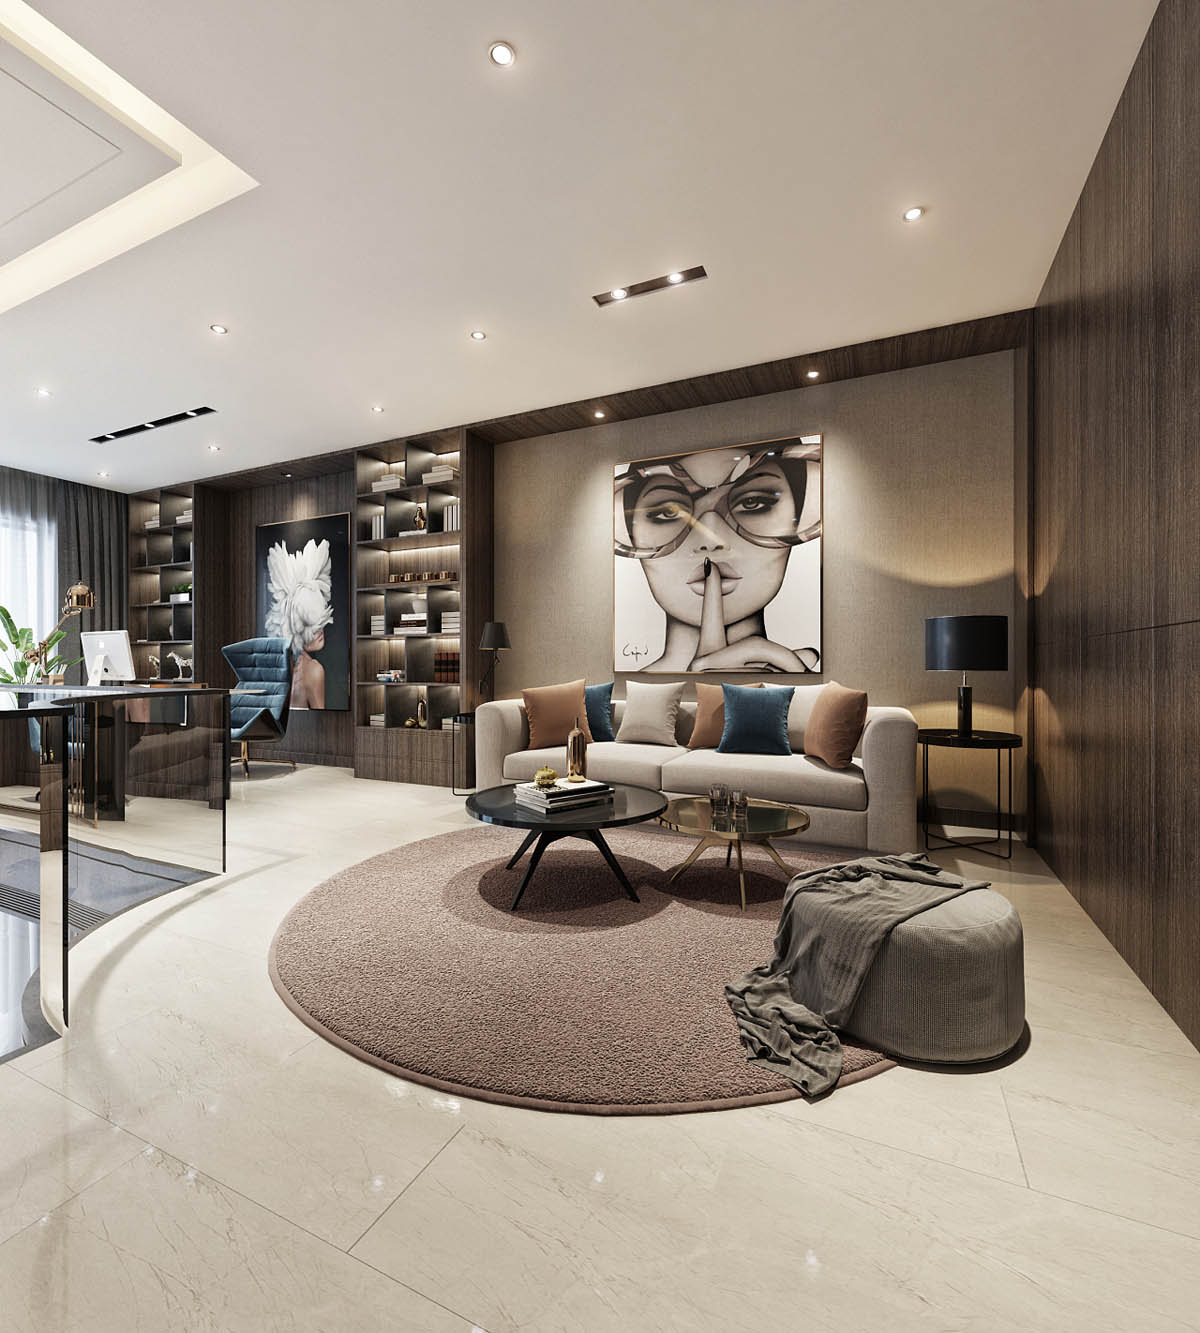 Luxury Home Design: Modern Asian Luxury Interior Design